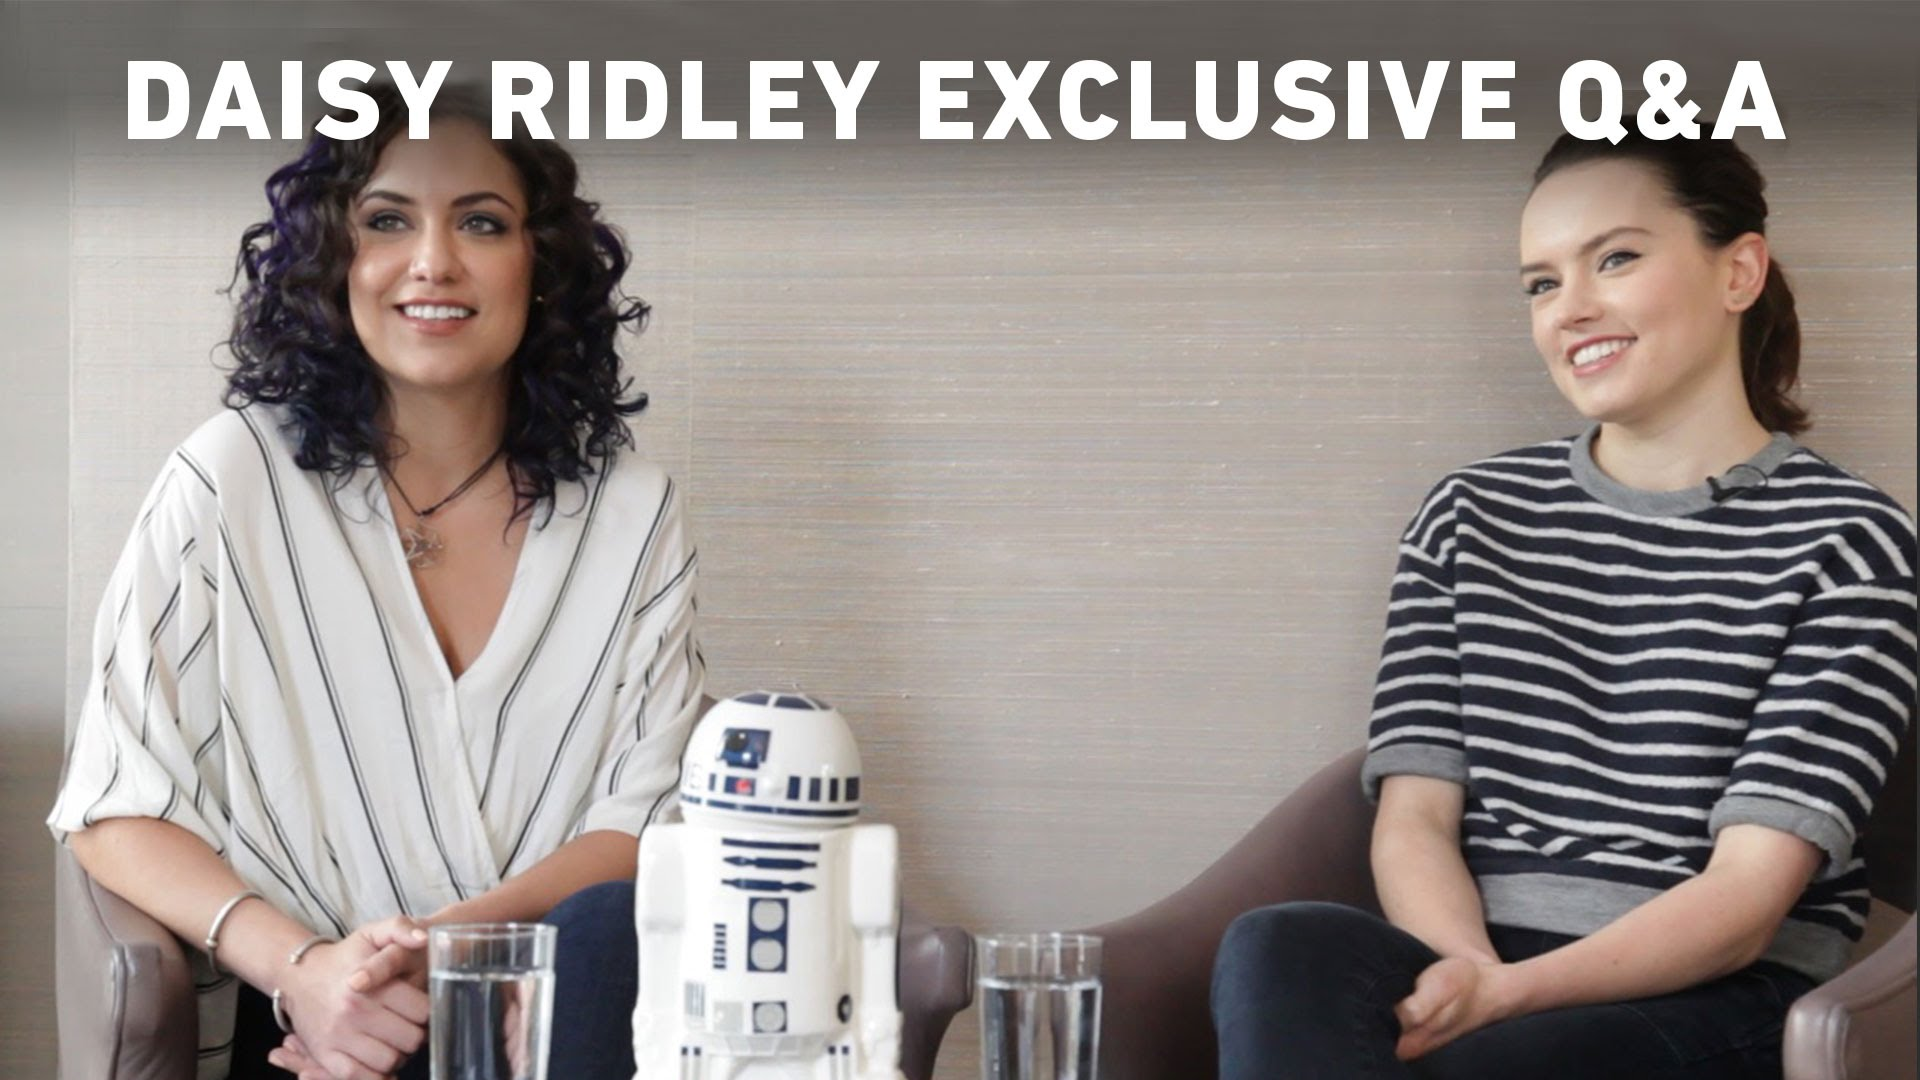 Daisy Ridley Exclusive Q & A